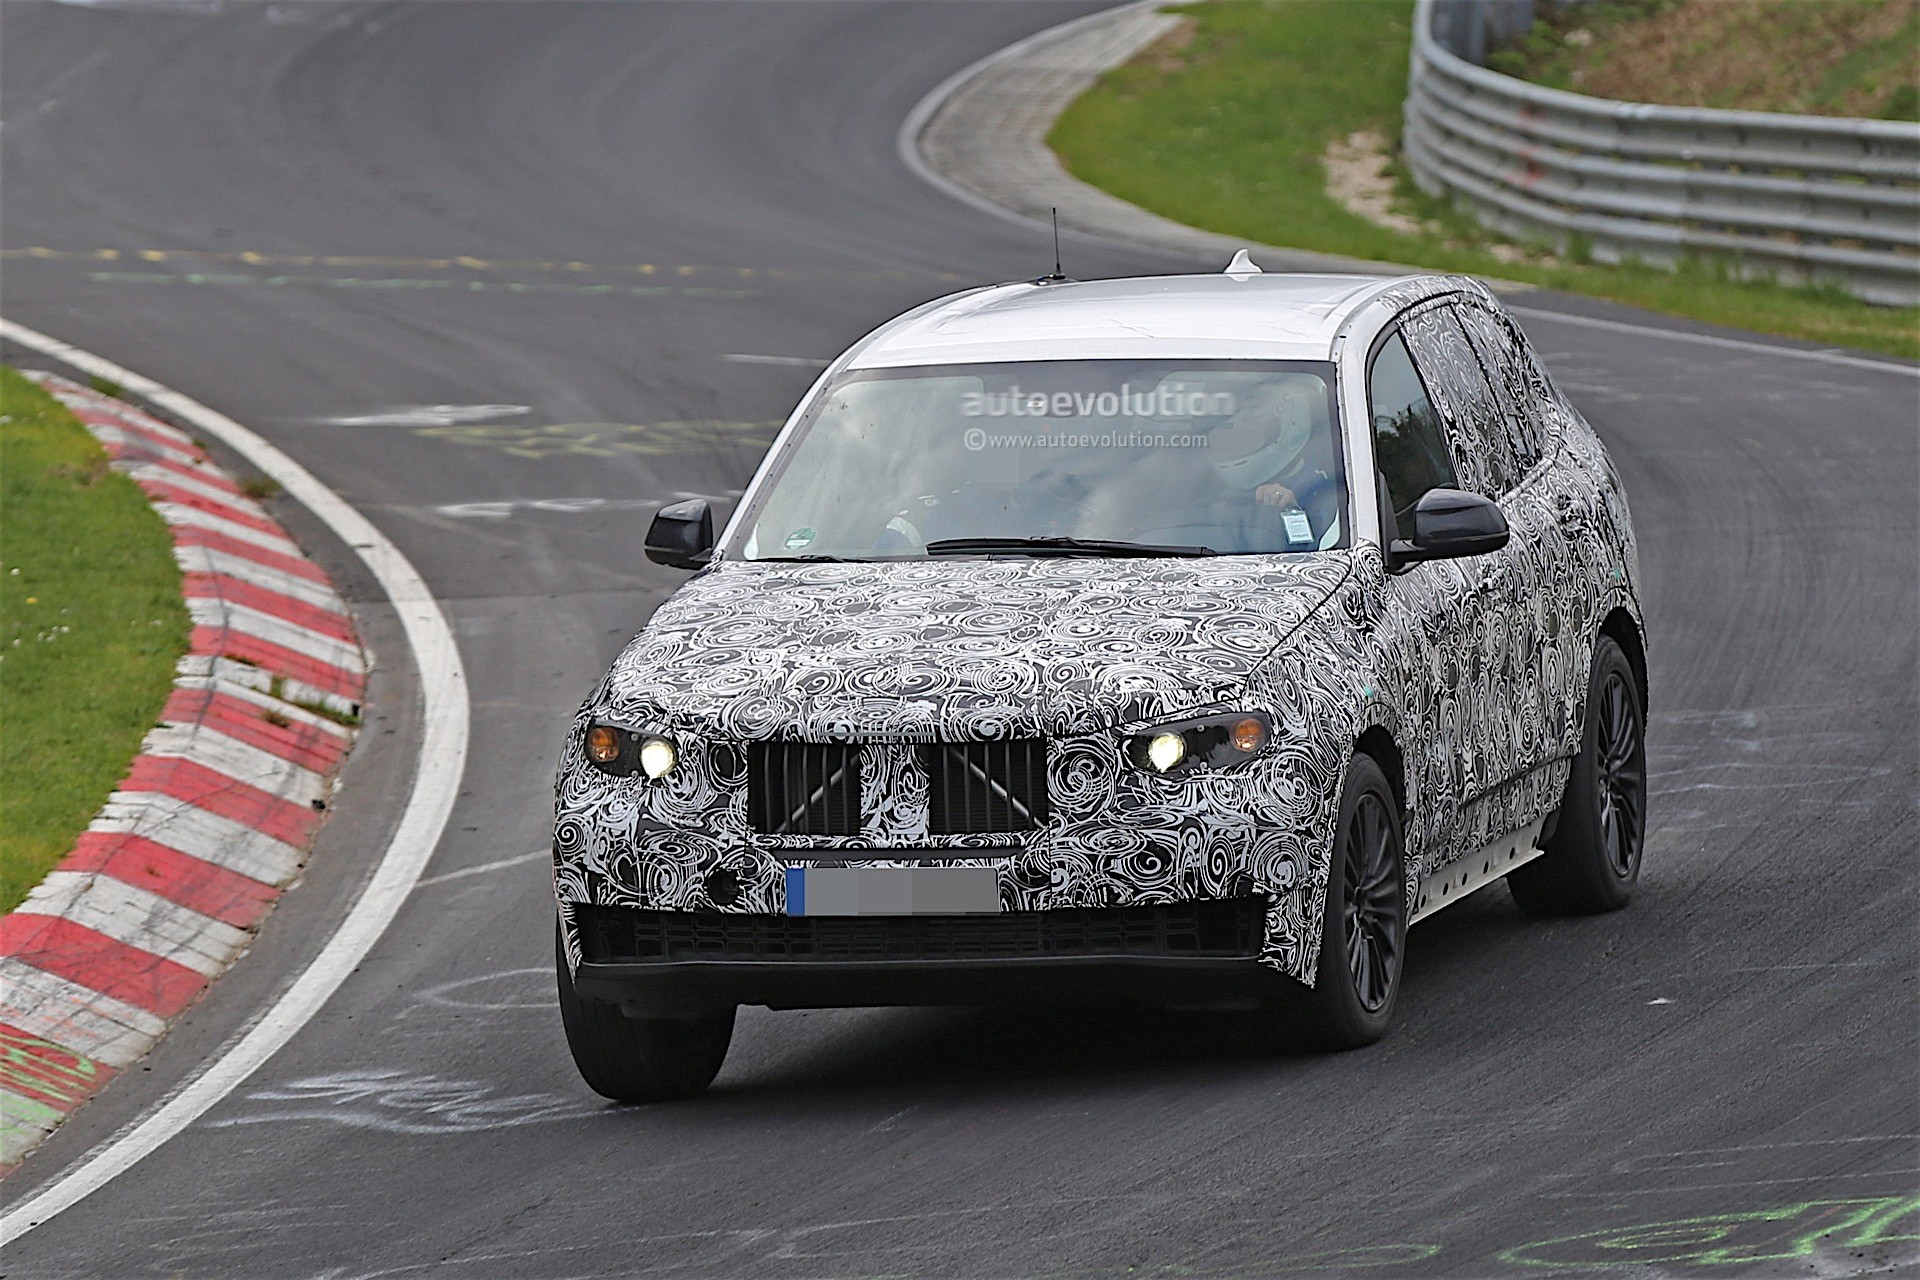 next-gen-2​019-bmw-x5​-laps-nurb​urgring-lo​oks-less-n​ose-heavy-​than-curre​nt-model_2